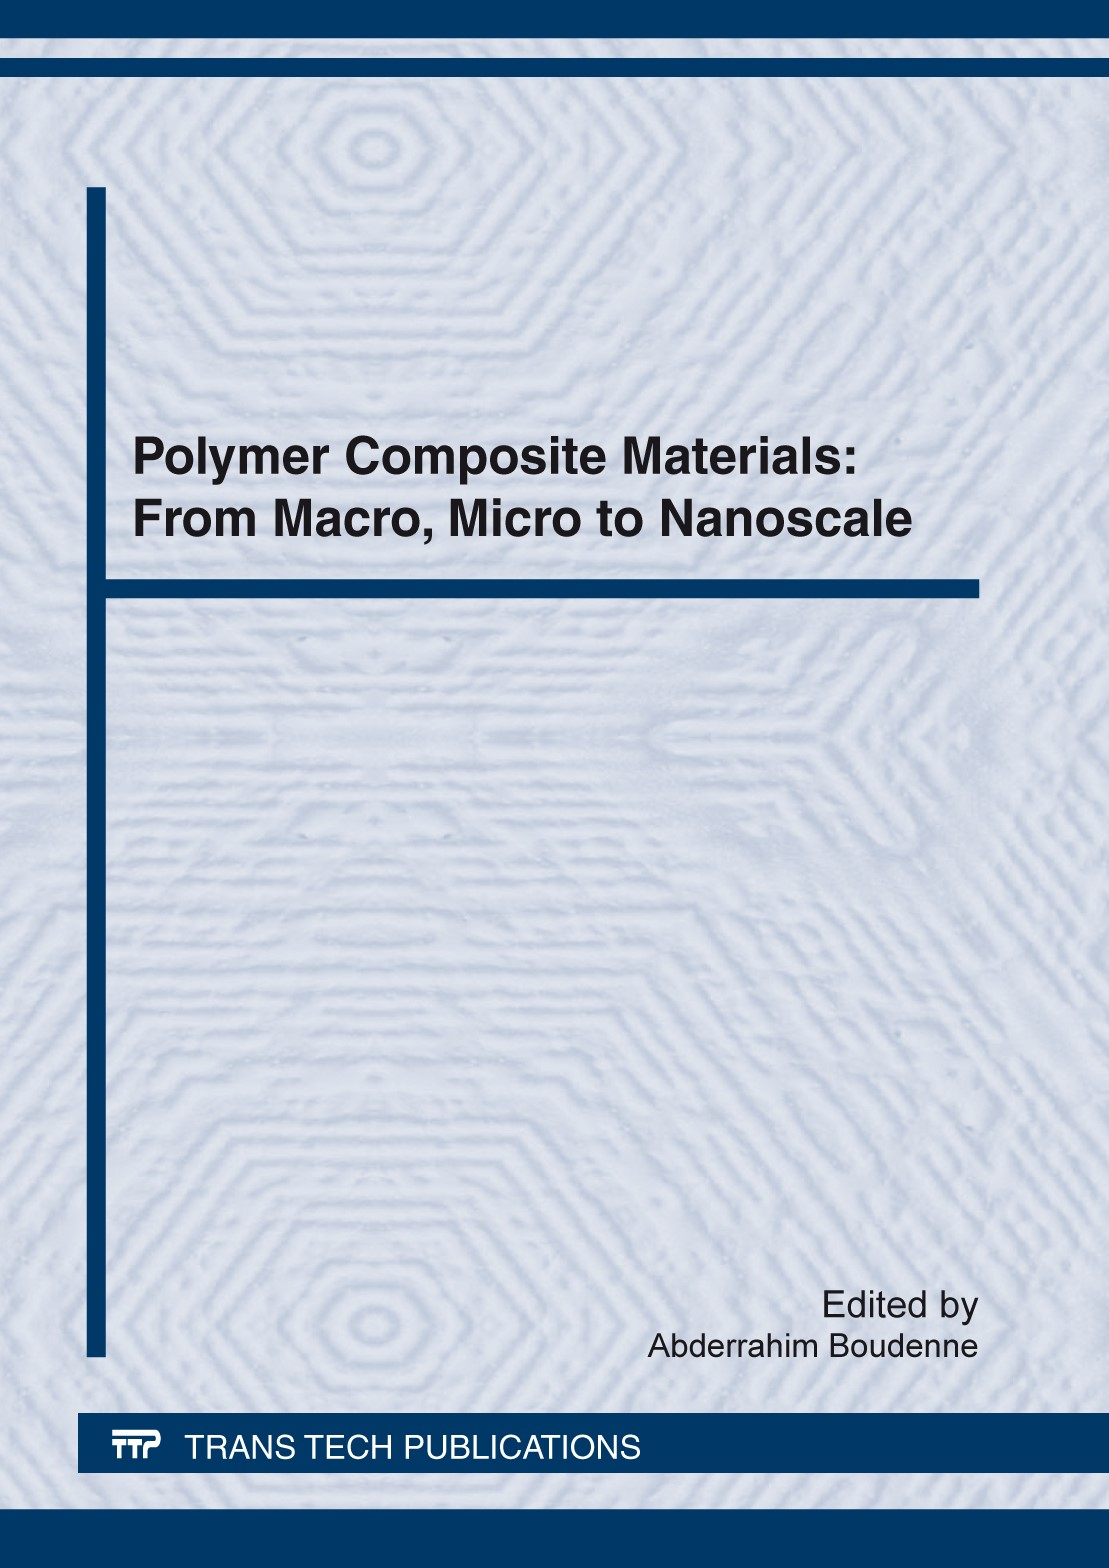 Polymer Composite Materials: From Macro, Micro to Nanoscale | Boudenne, 2012 | Buch (Cover)